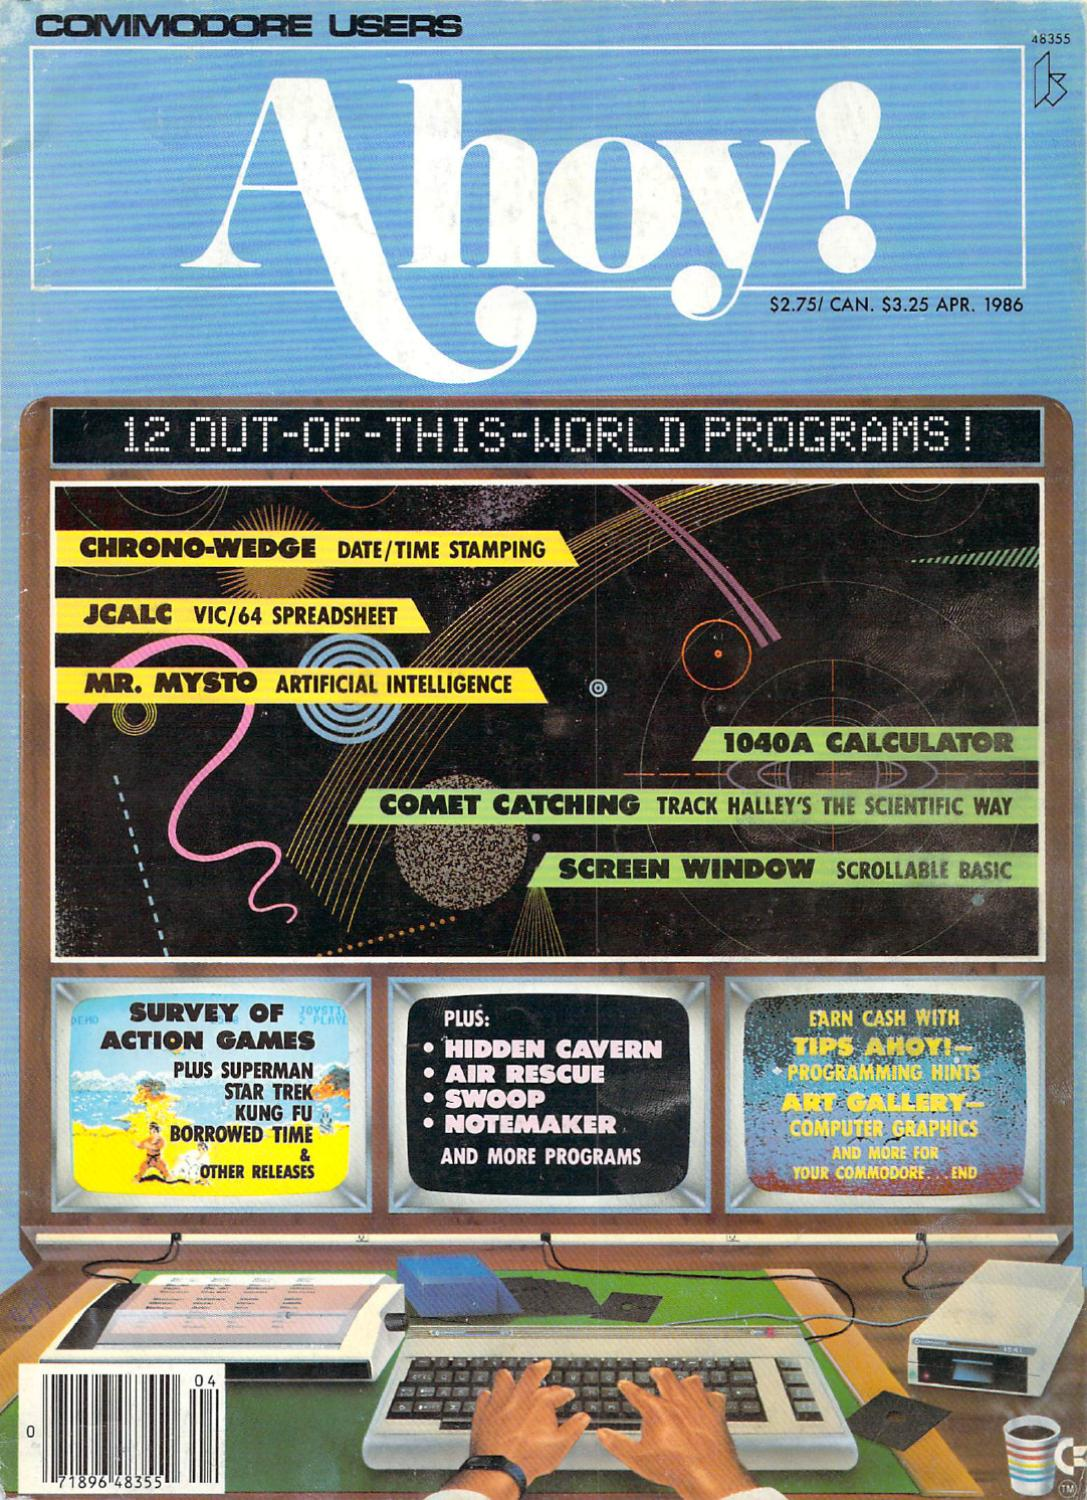 Ahoy_Issue_28_1986_Apr by Zetmoon - issuu